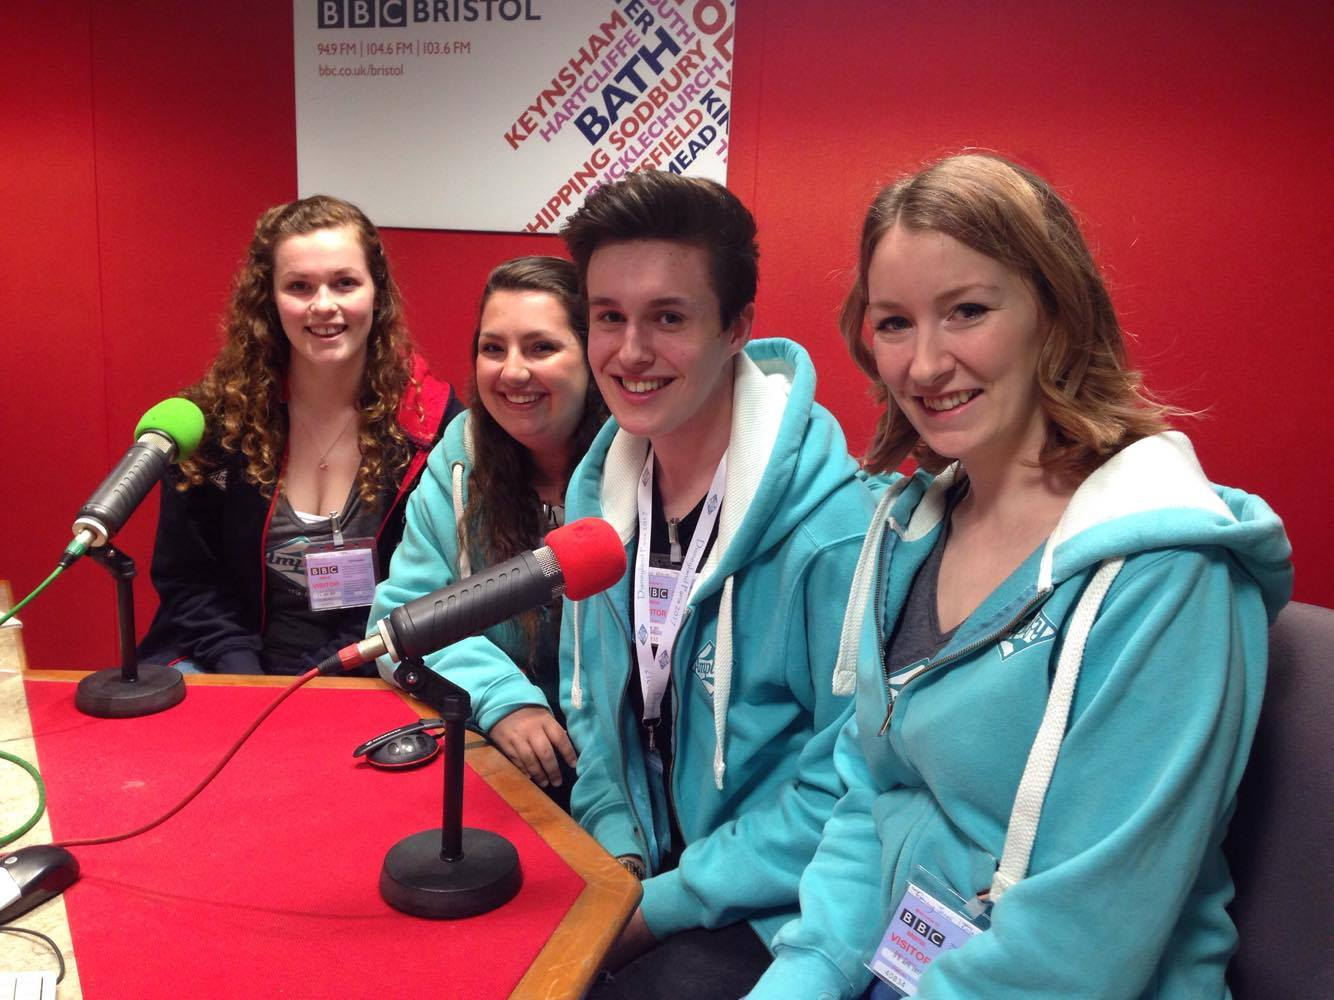 Some of our Amps at BBC Radio Bristol being interviewed about the upcoming performance in Disneyland Paris